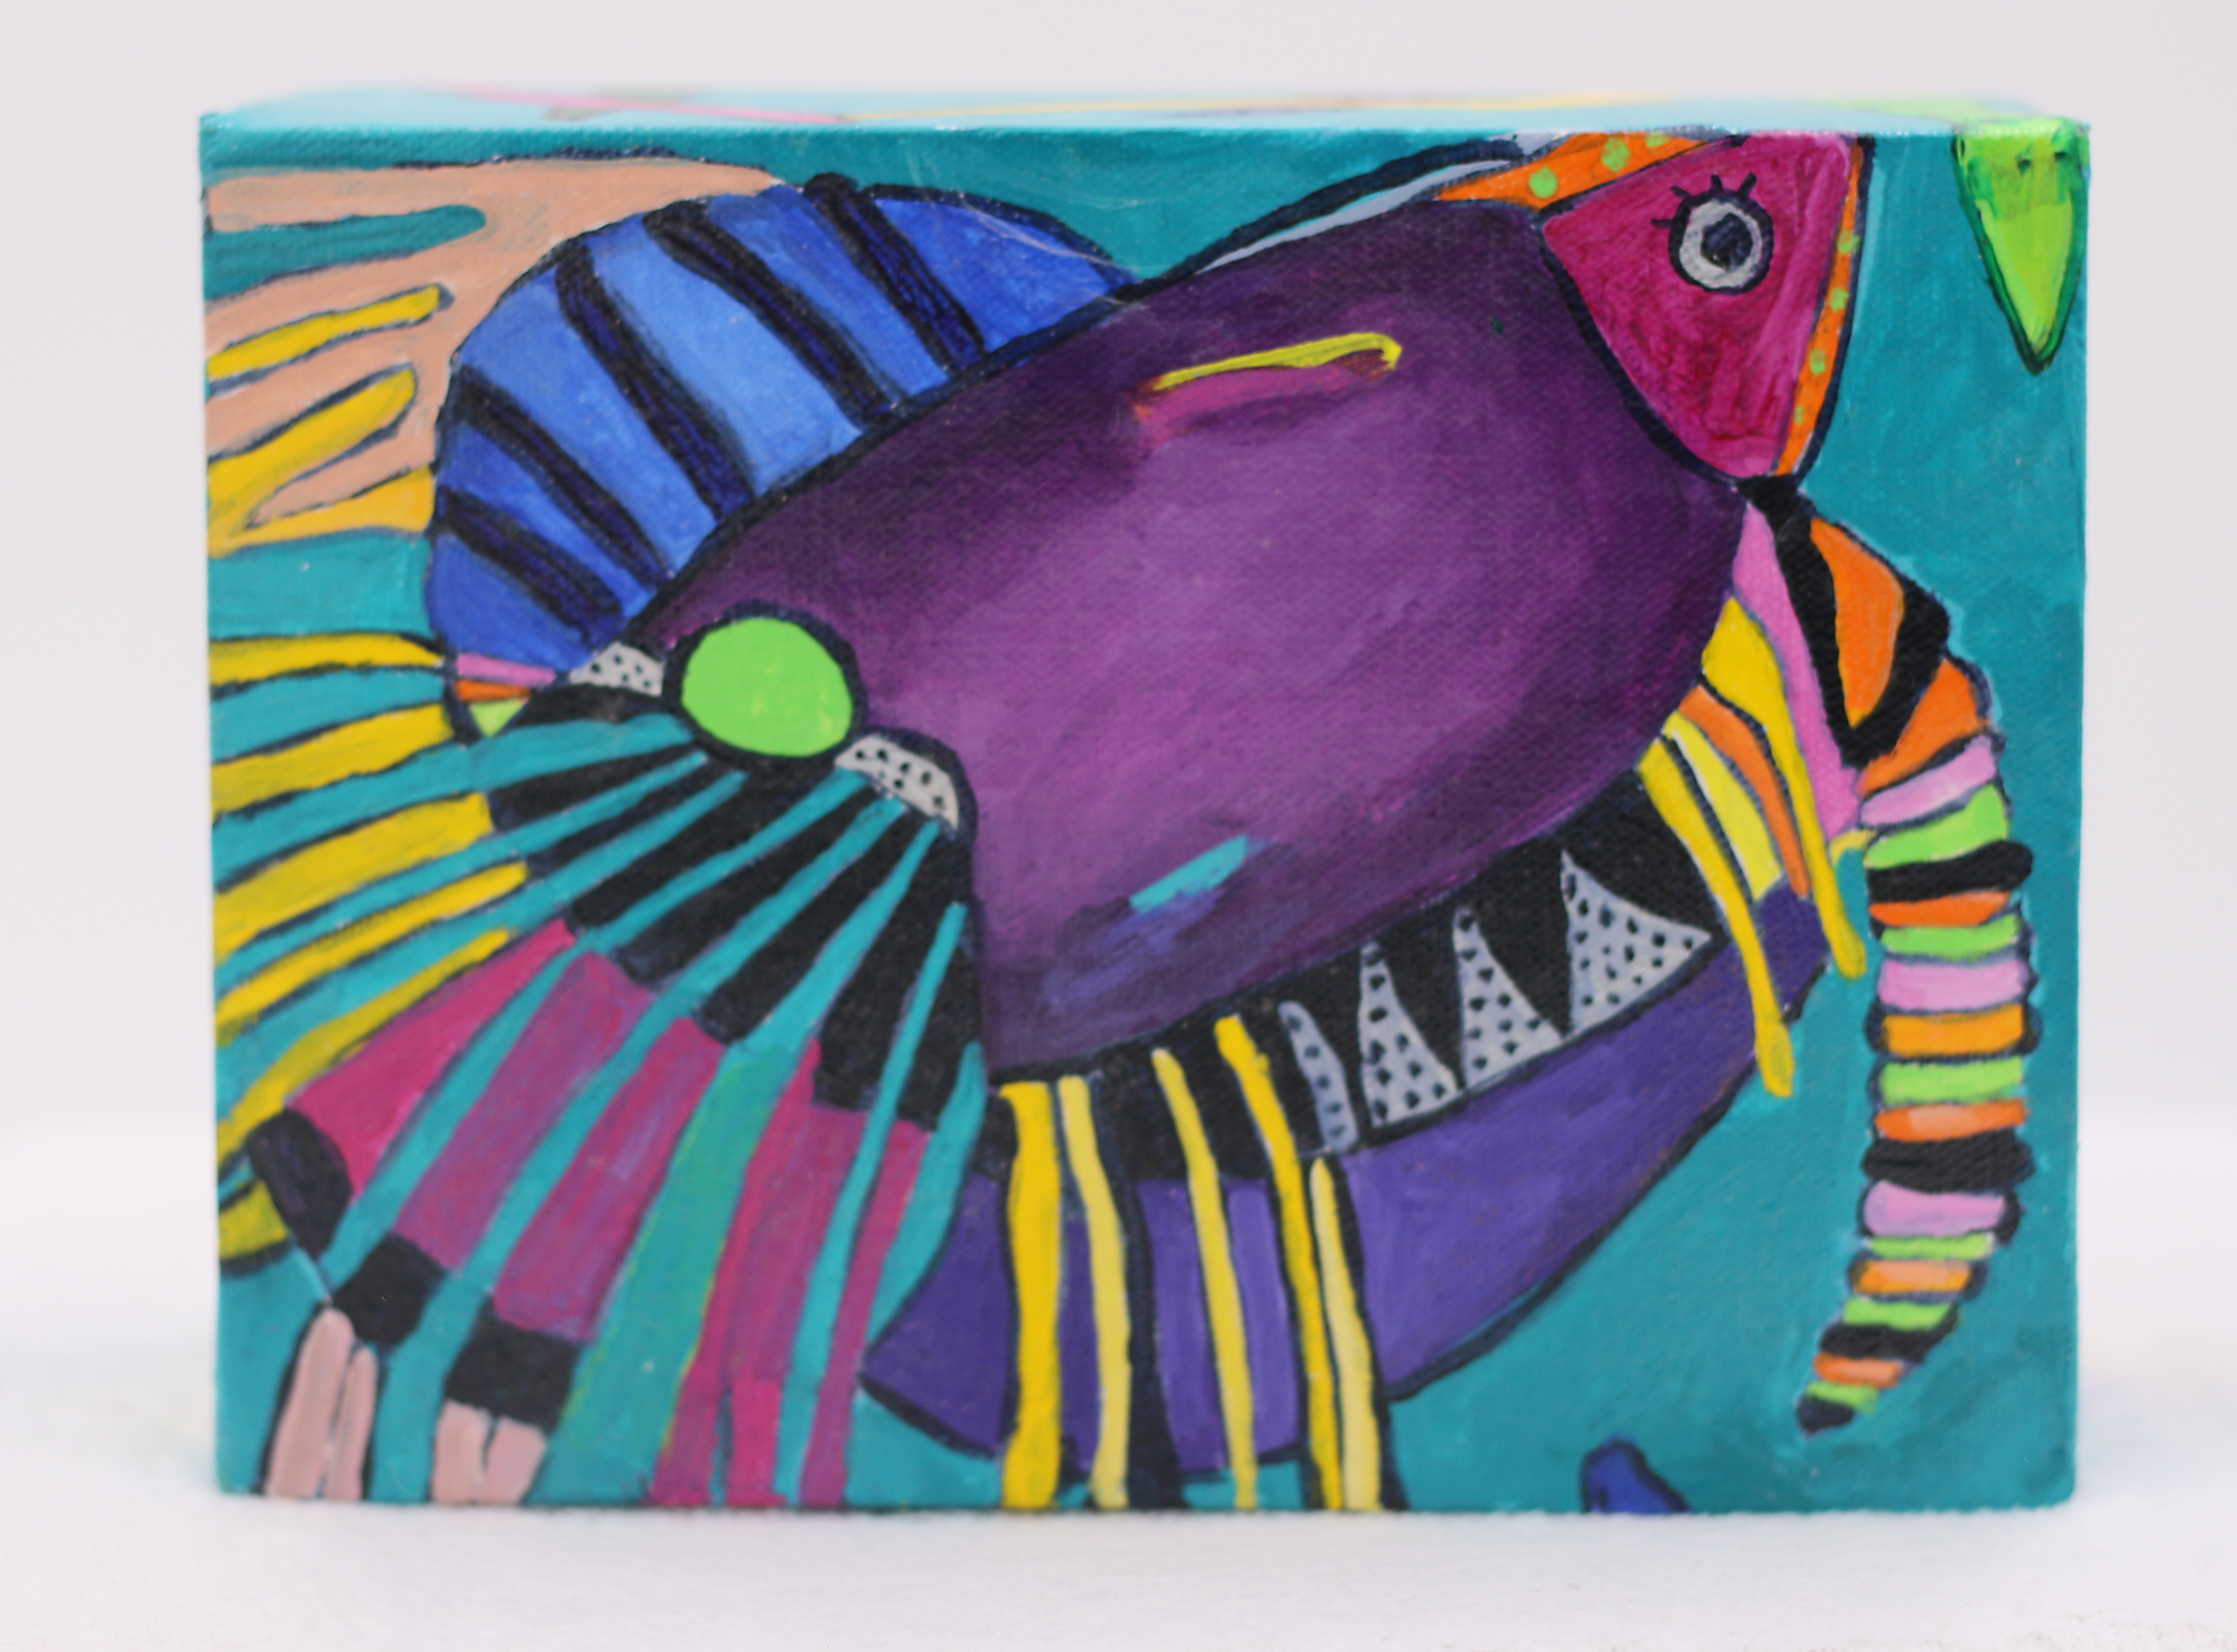 Ellen guyer fighting fish 1 ozepfi